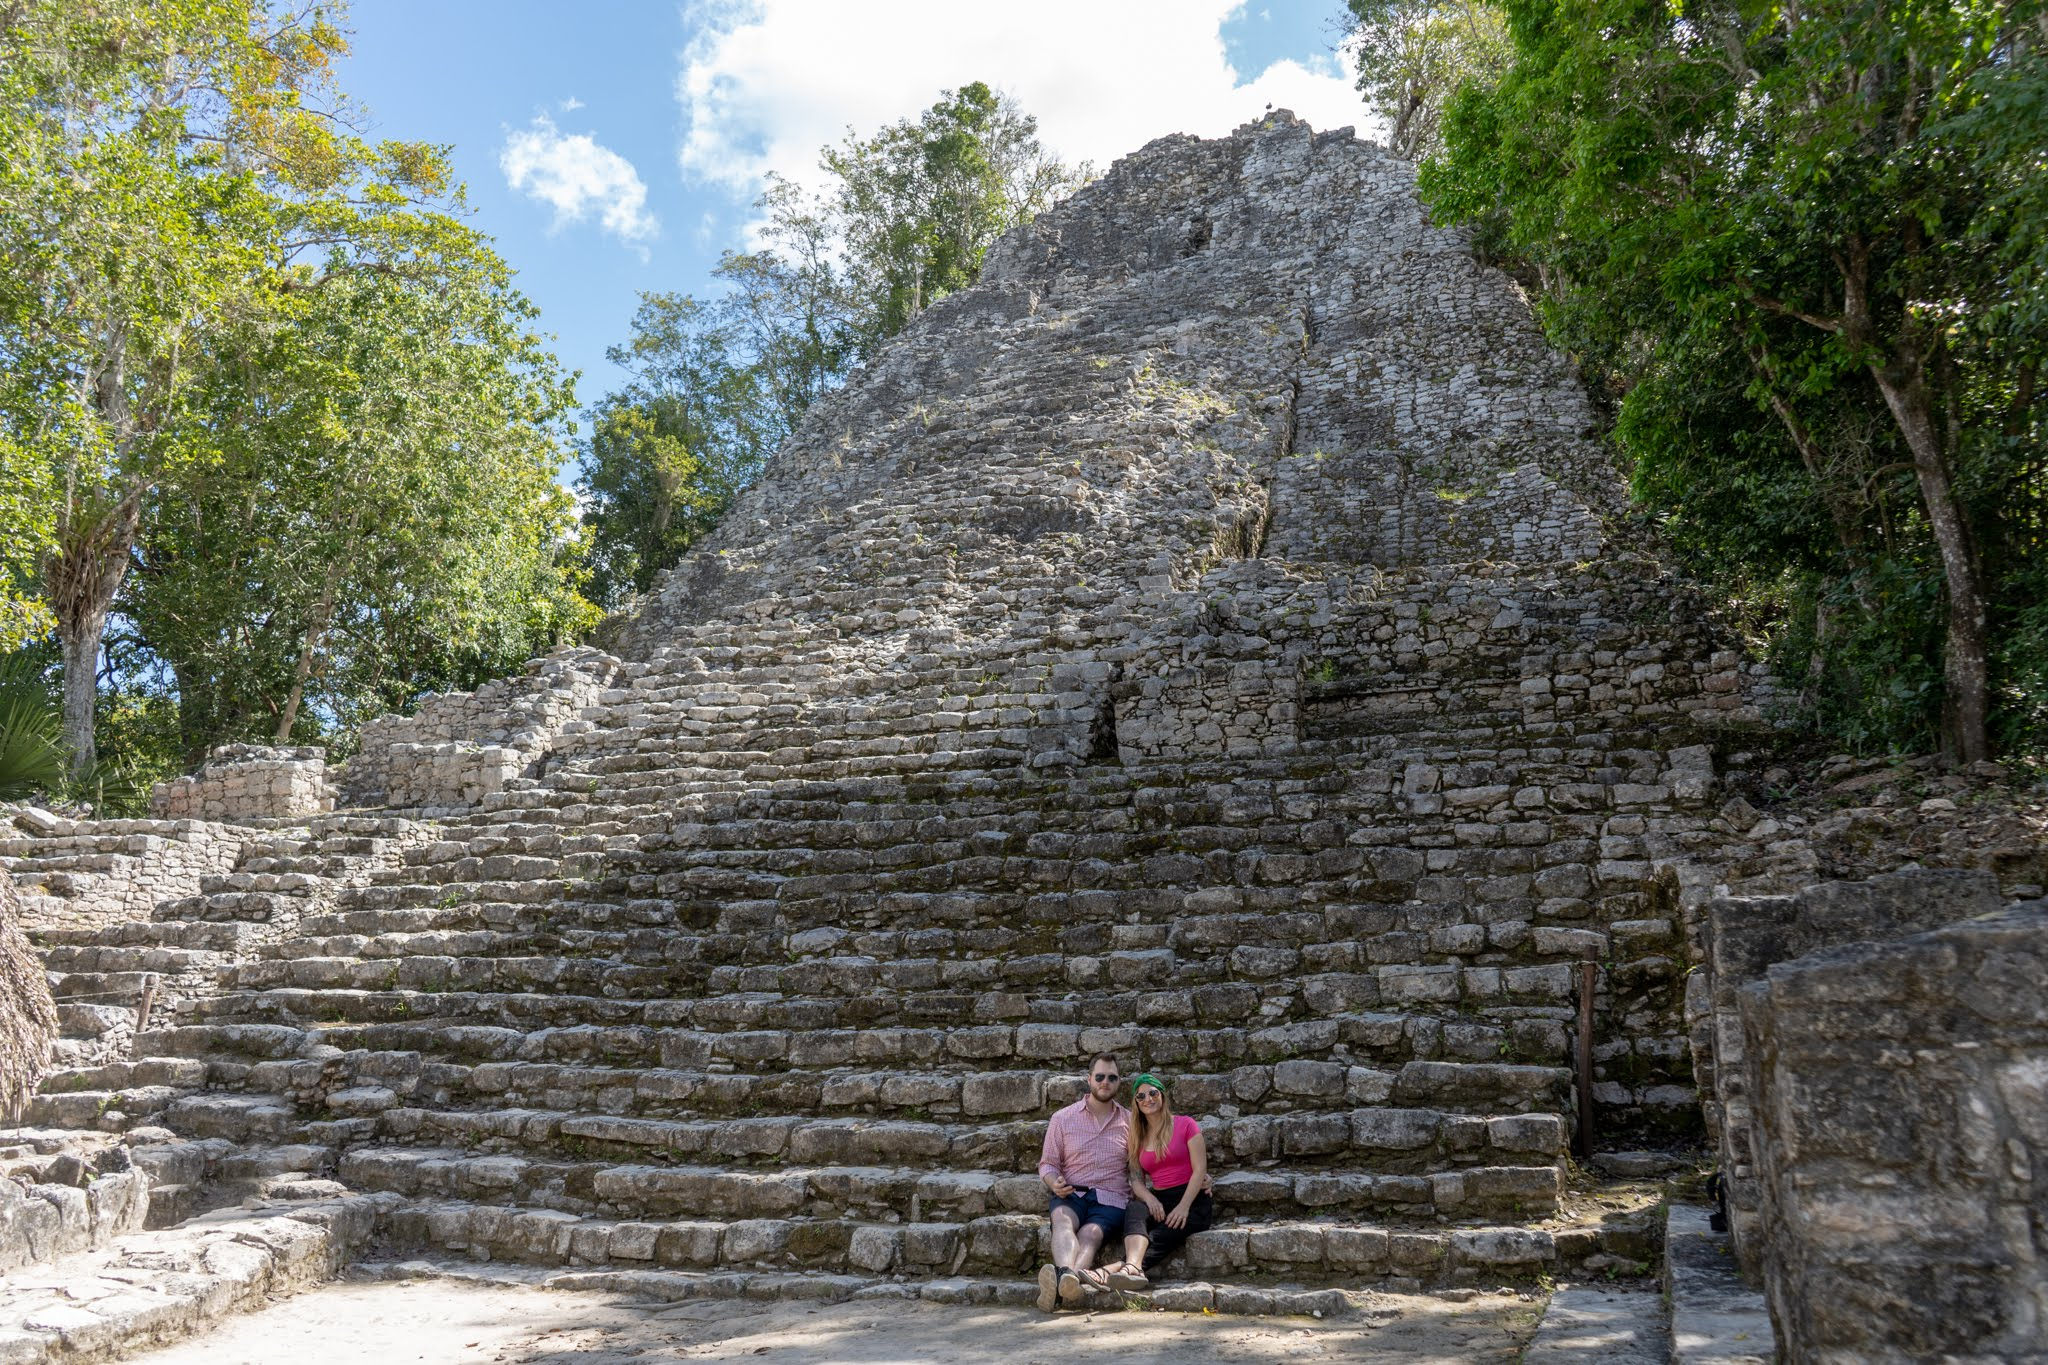 Uprooted-Traveler-Vegan-Weekend-in-Tulum-Mexico-pyramid-cabo-ruins.jpg